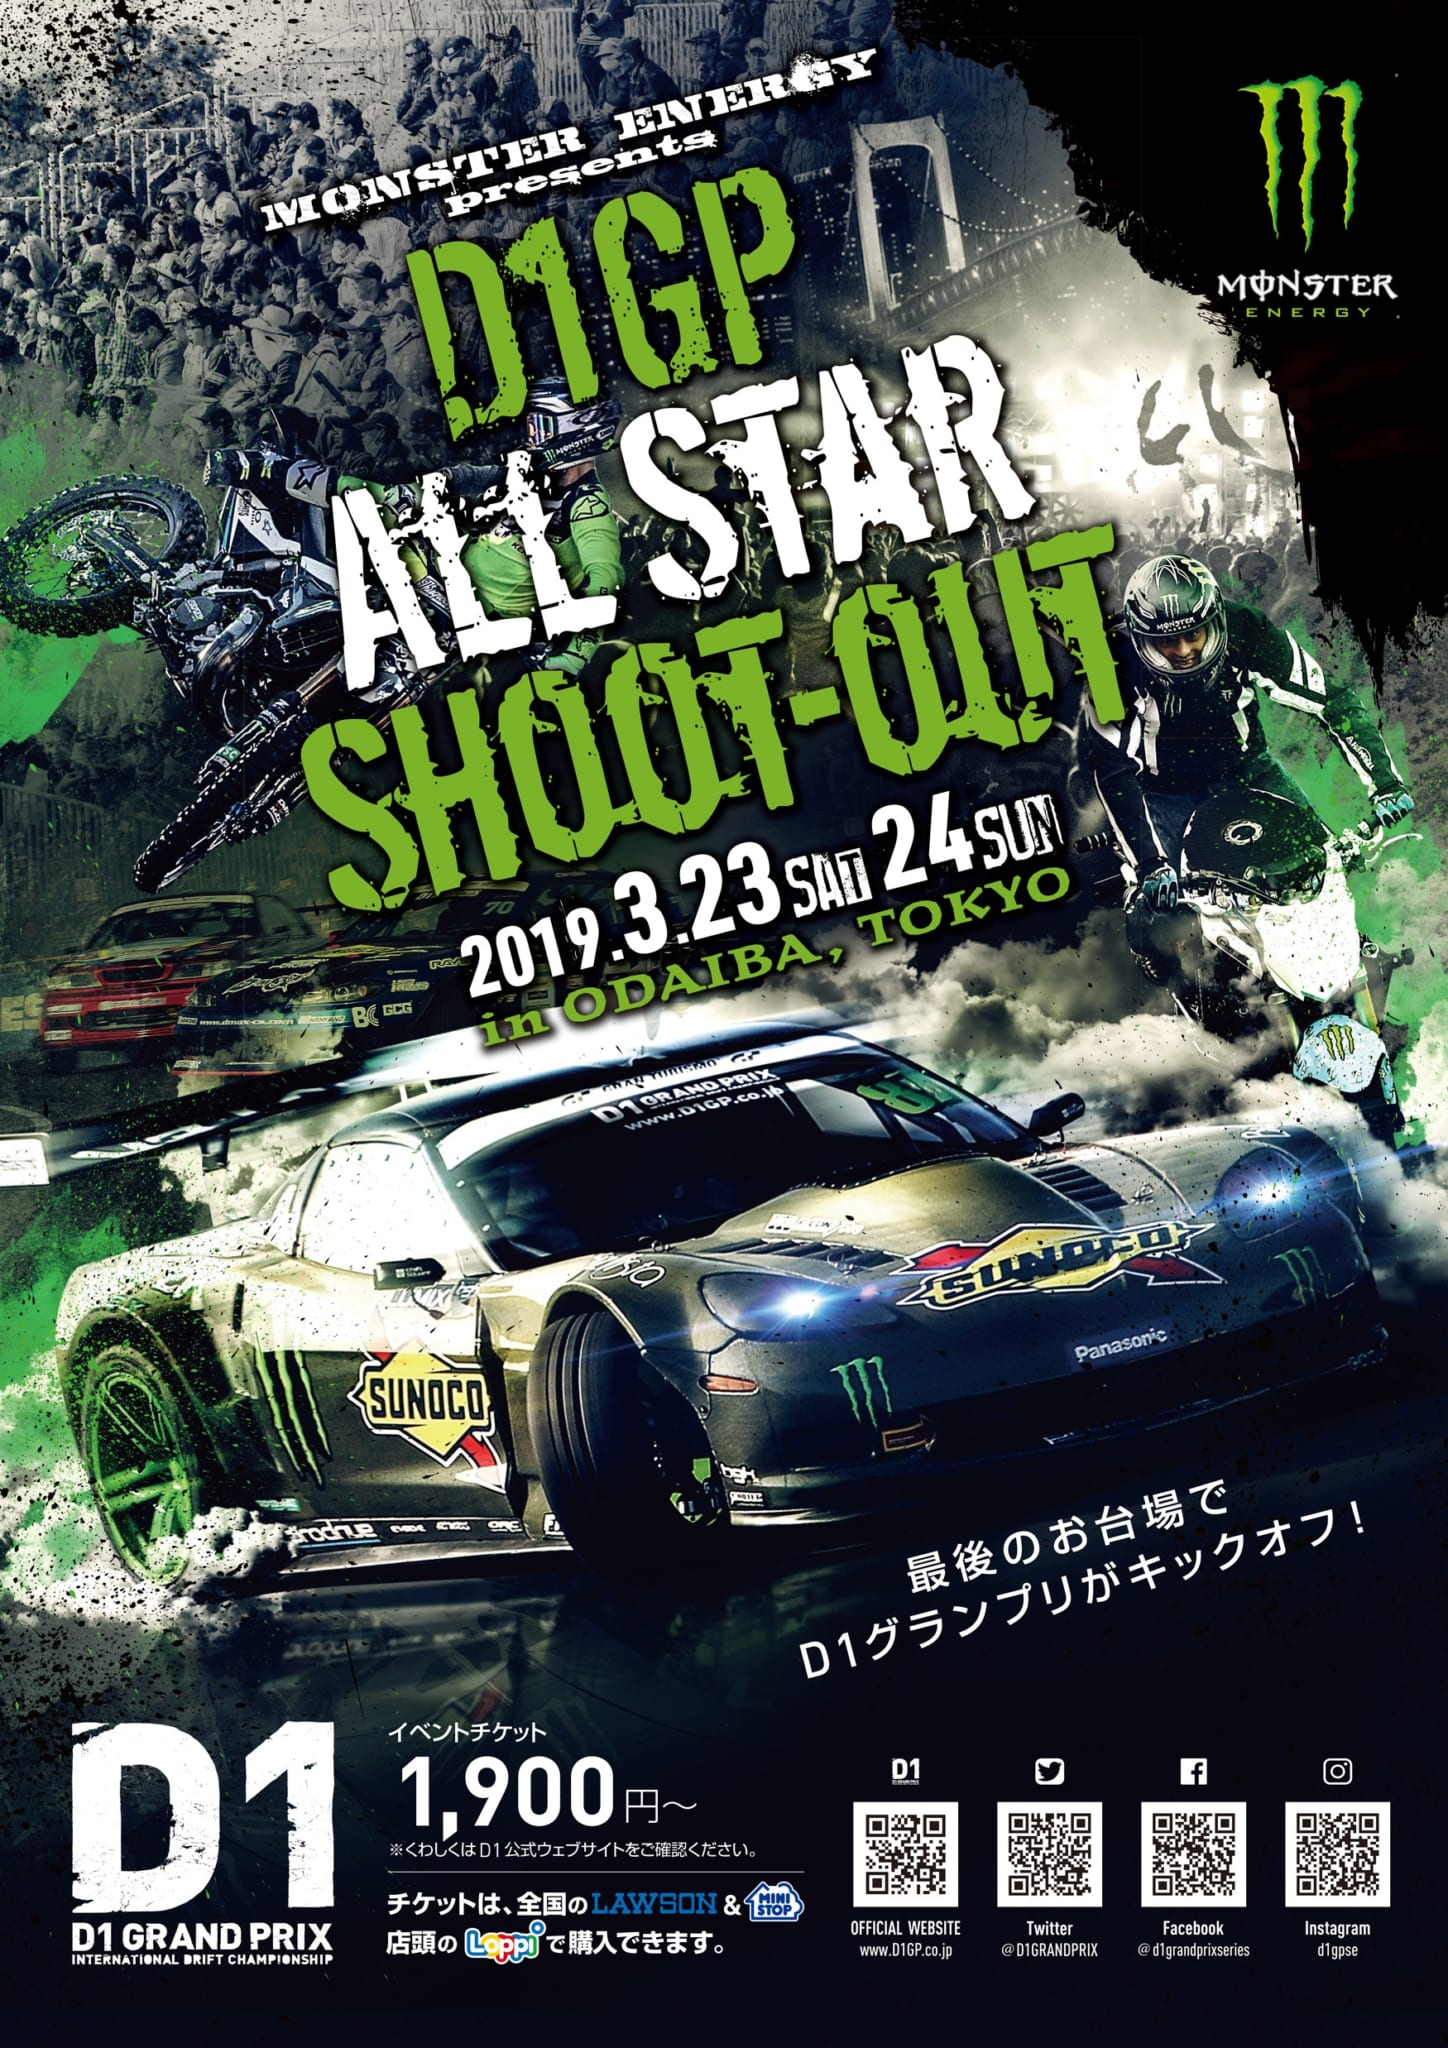 Monster Energy presents D1GP All Star Shoot-out